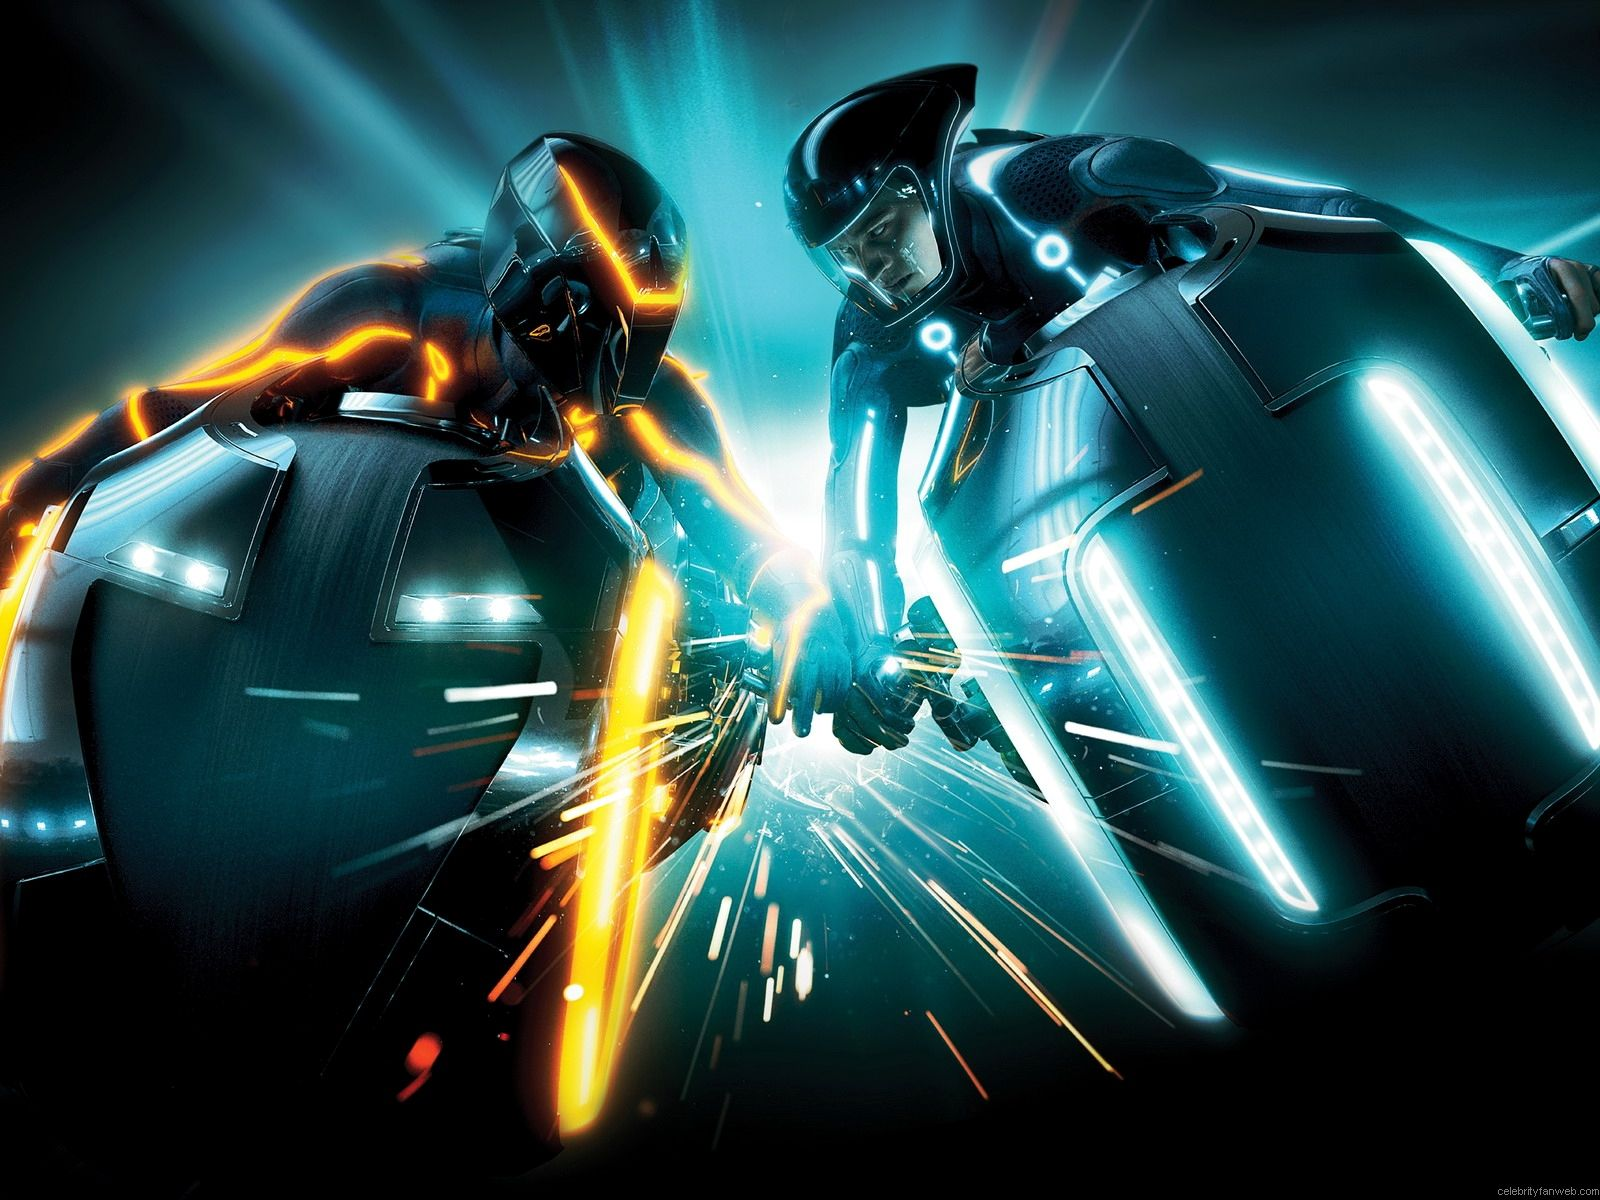 Pin By Colin Anderson On Tron Vault In 2018 Pinterest Tron